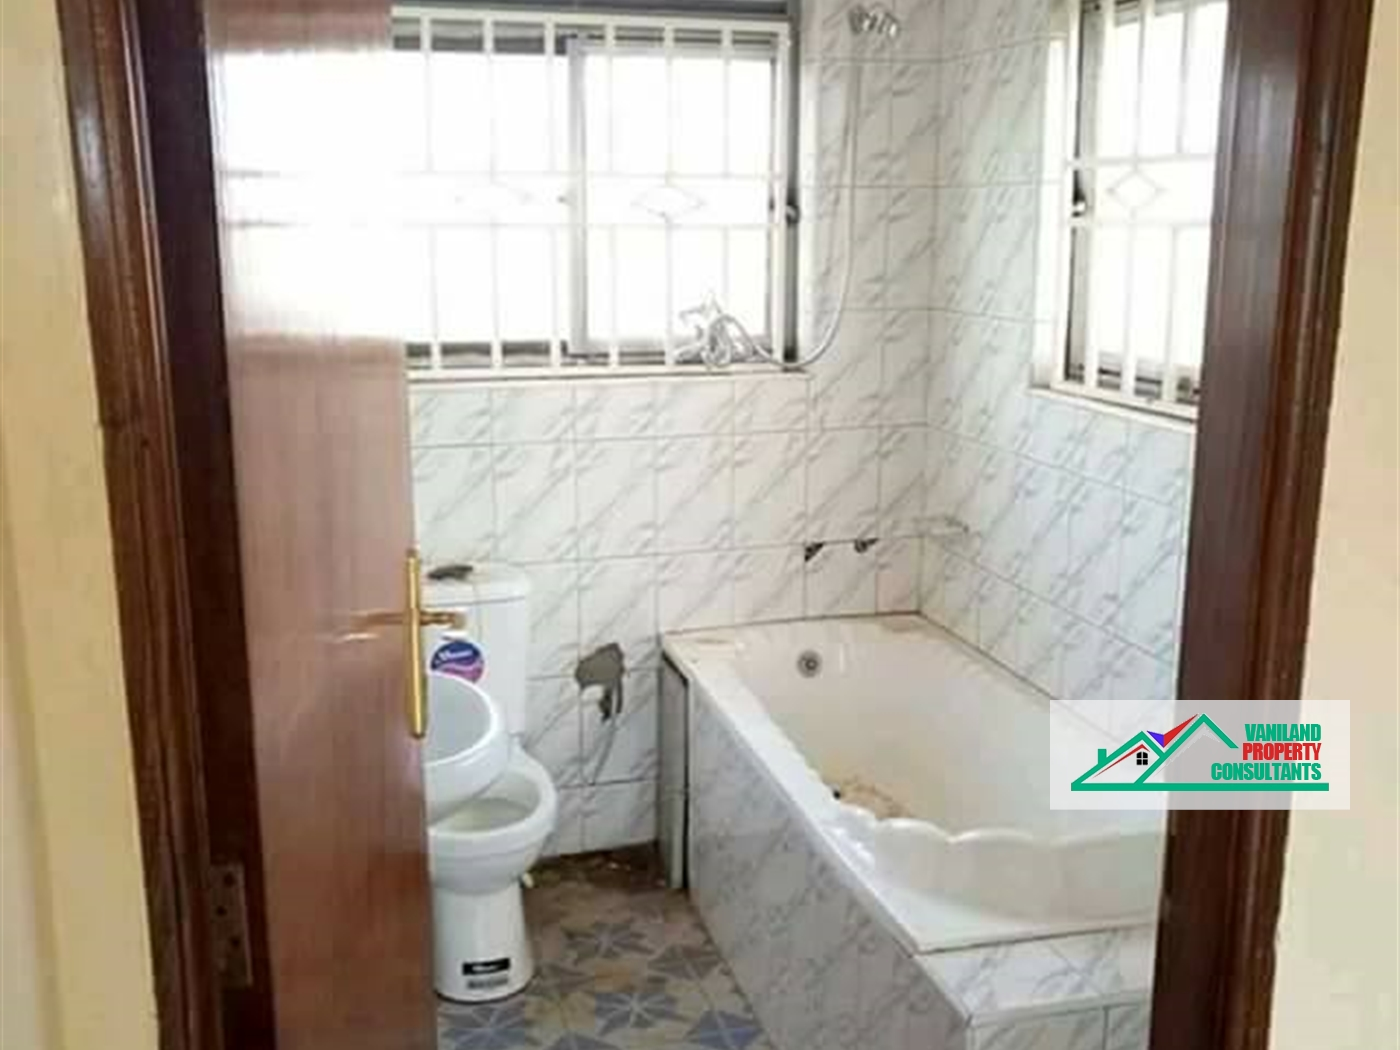 Apartment for rent in Kurambiro Kampala